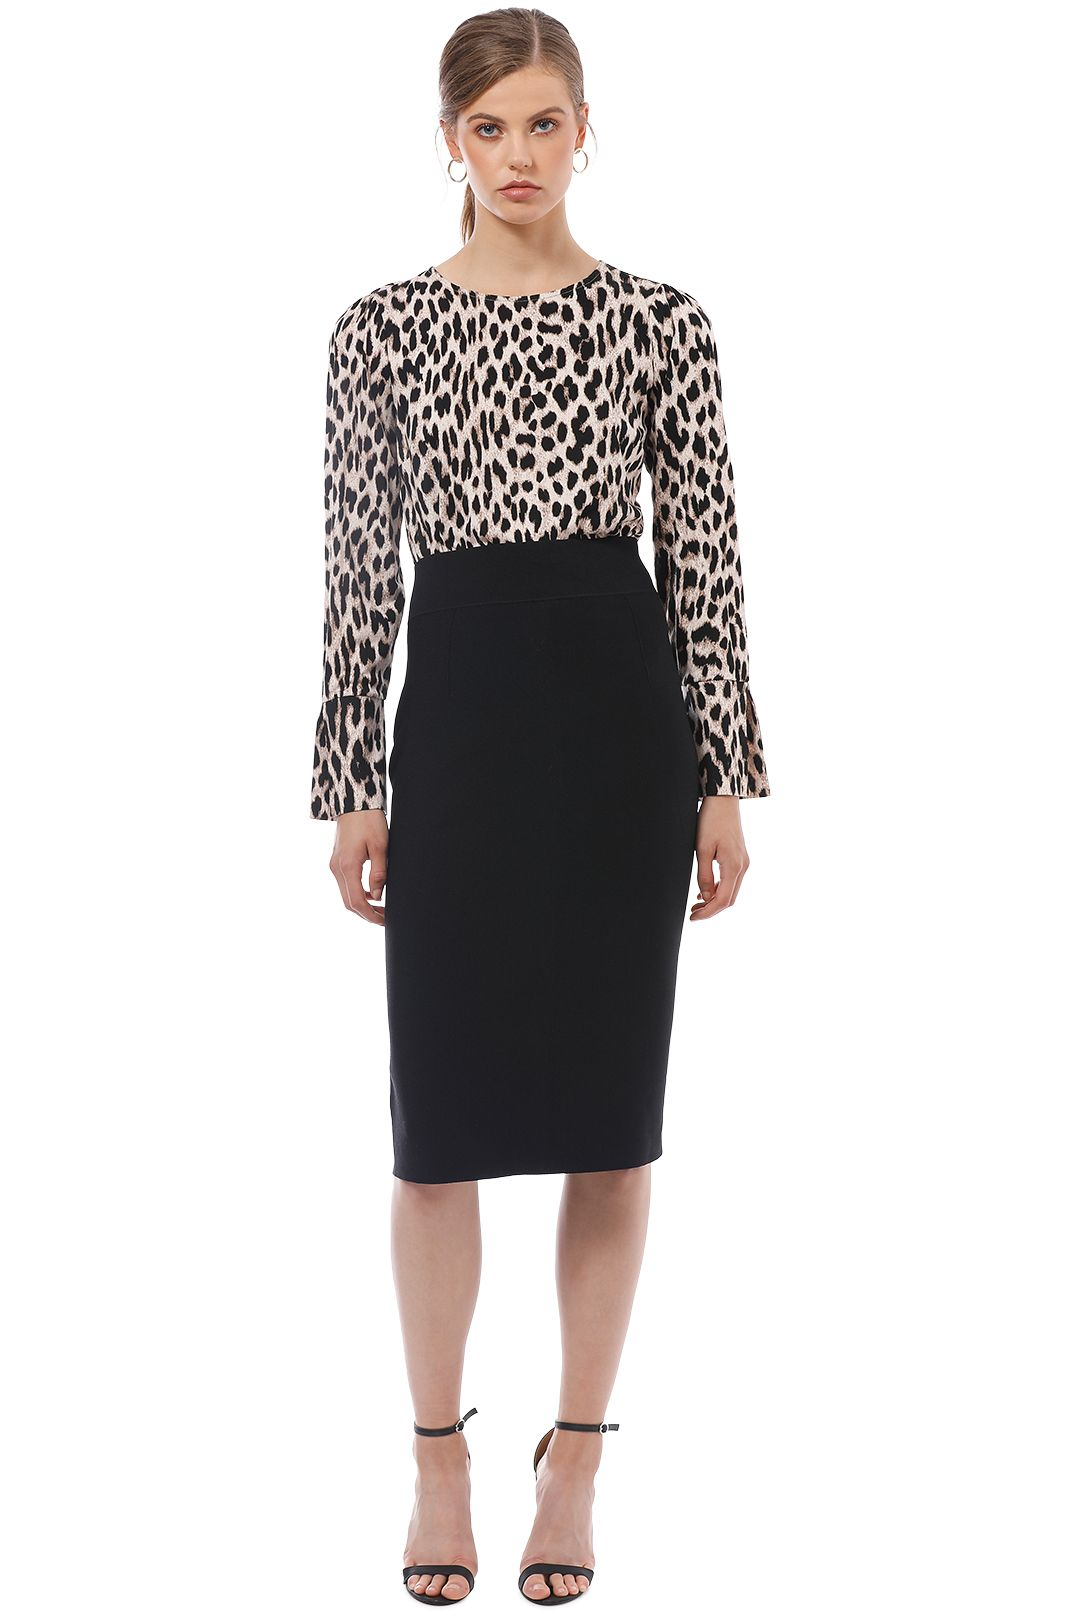 Witchery - Sleeve Detail Top - Leopard Print - Front